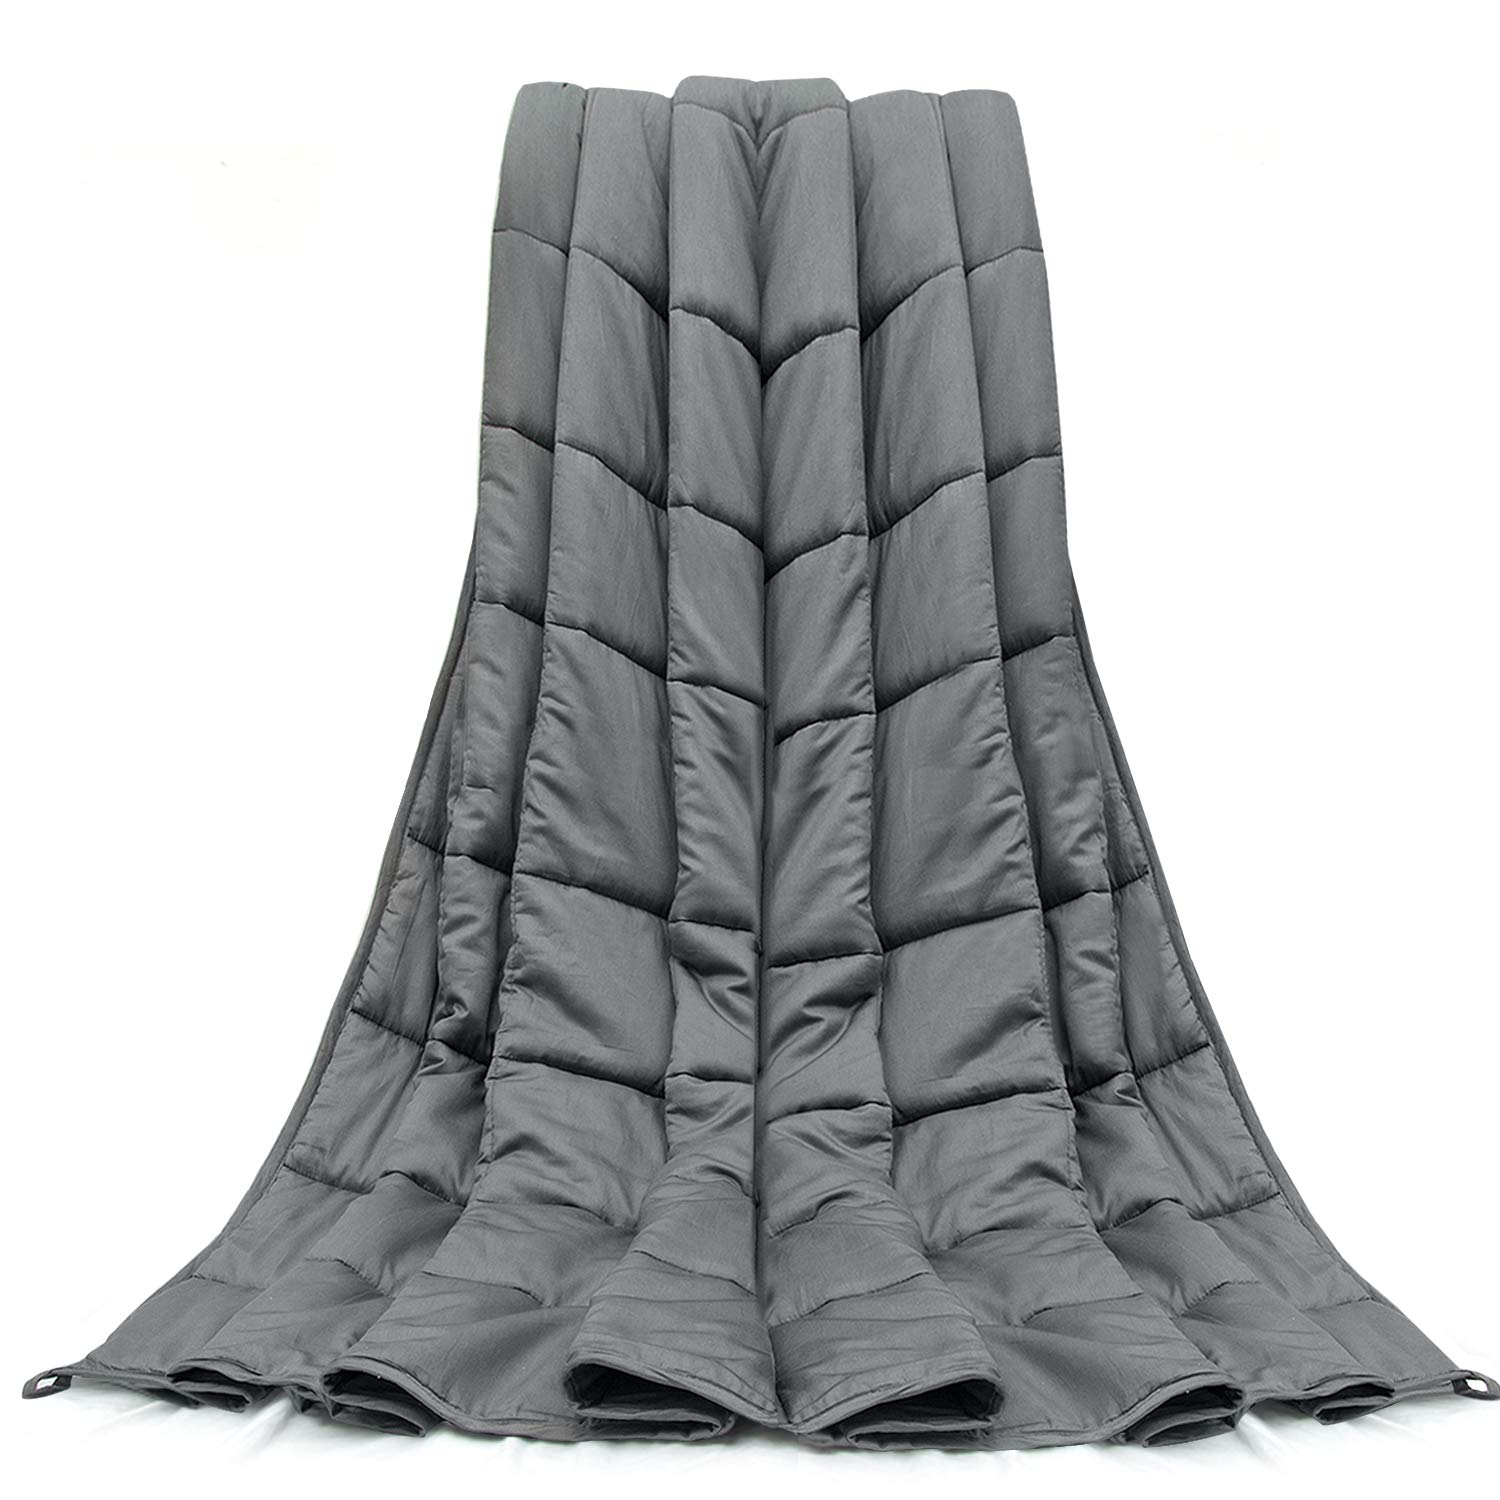 Weighted Blanket 12 LBS 60X80 Queen King Size Soft Comfortable Breathable 100% Cotton Washable Weighted Blanket Glass Beads for (100-140 LB Person) Kids Adult Man Woman Grey by joybest